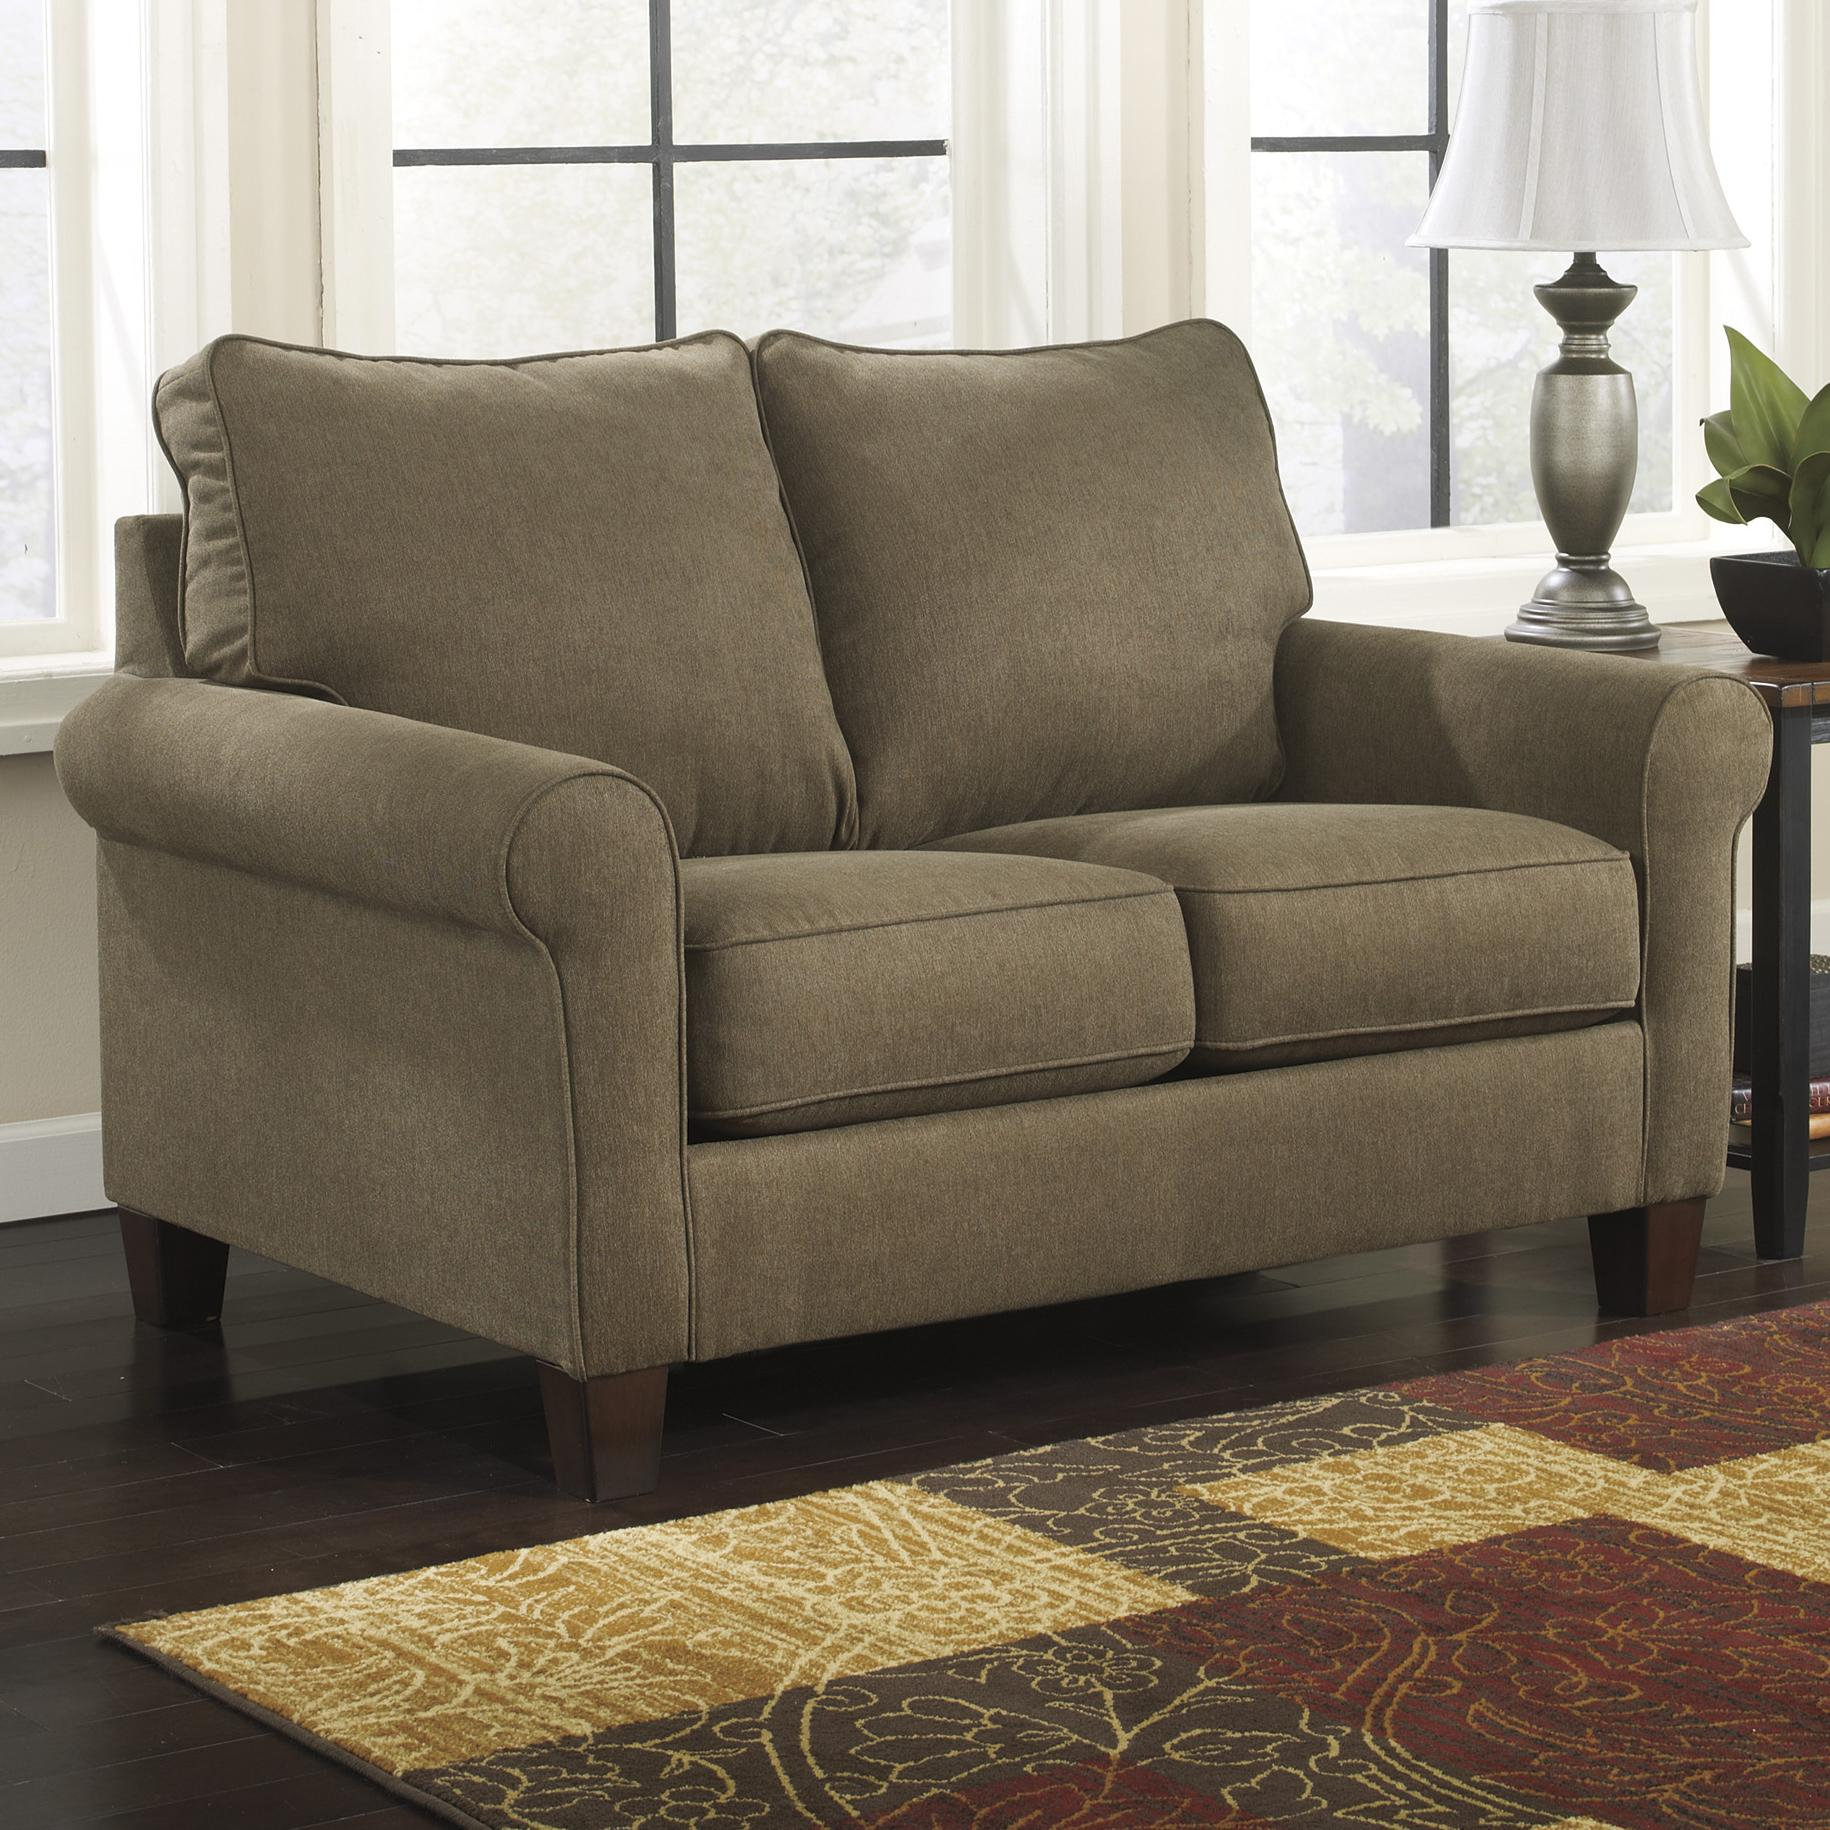 58 Twin Sofa Sleeper By Signature Design By Ashley Wolf And  ~ Ashley Furniture Sofa Beds Price